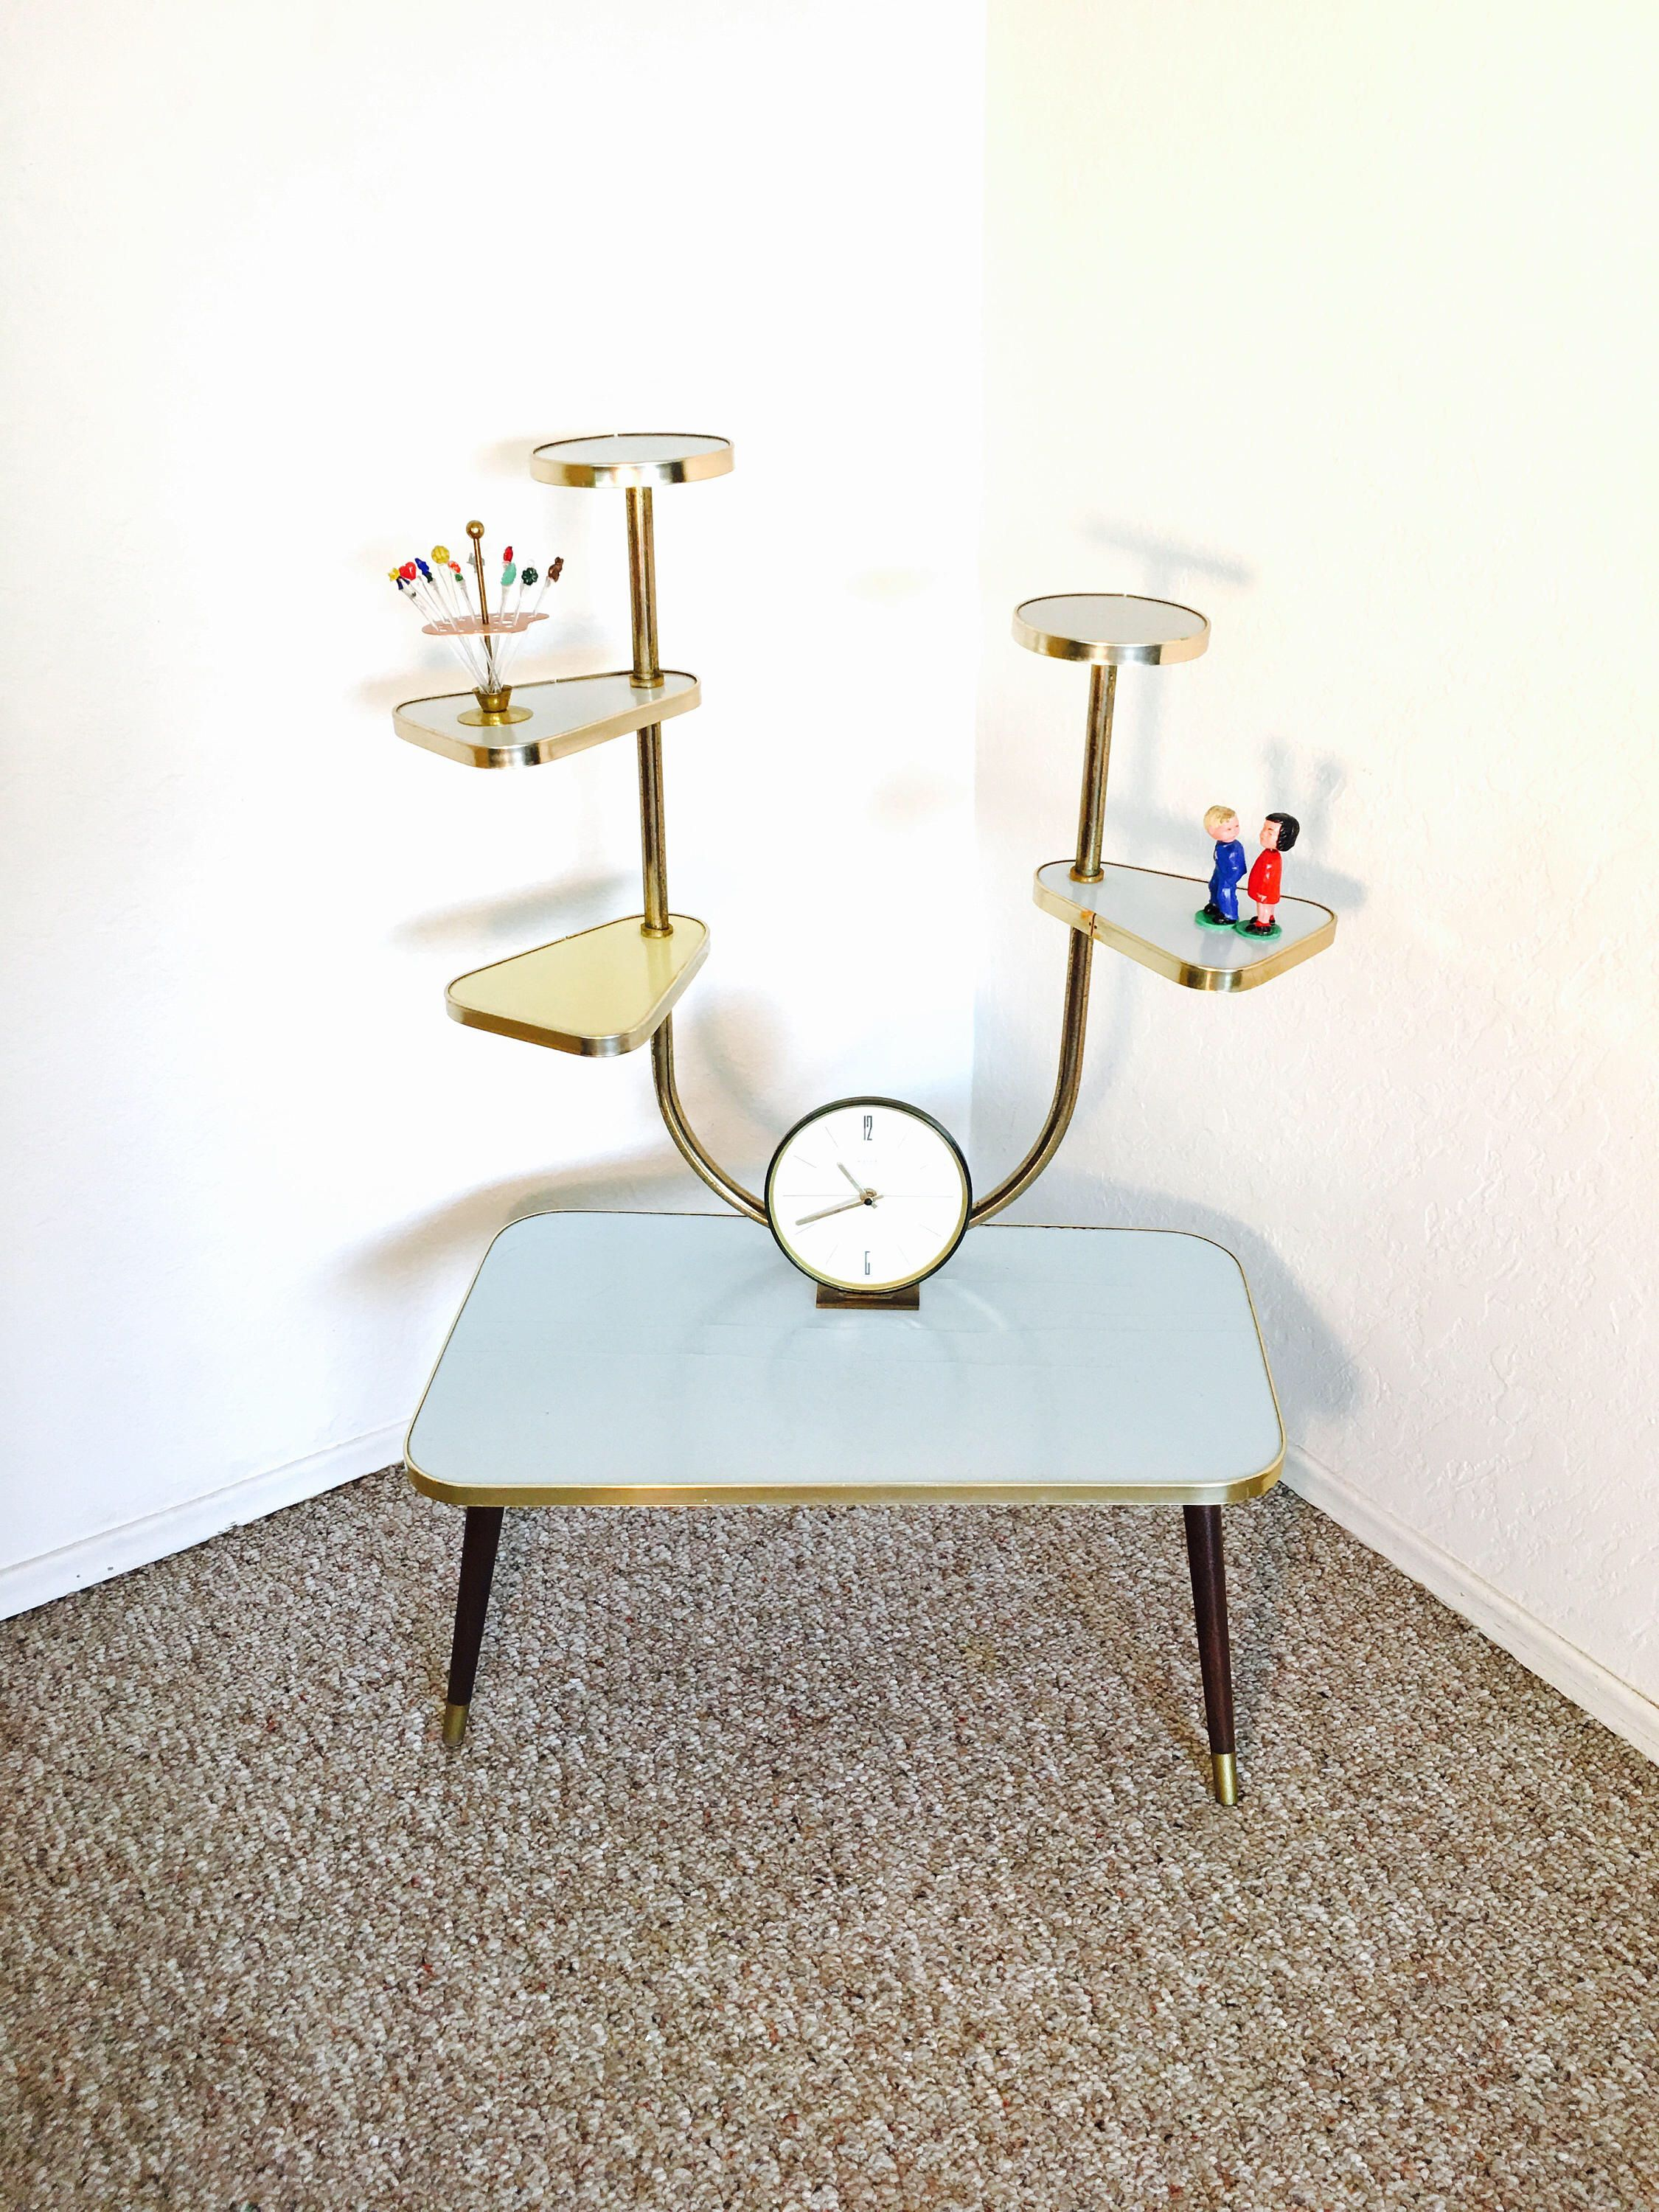 Atomic Era Table Mid Century Plant Stand Display Table Space